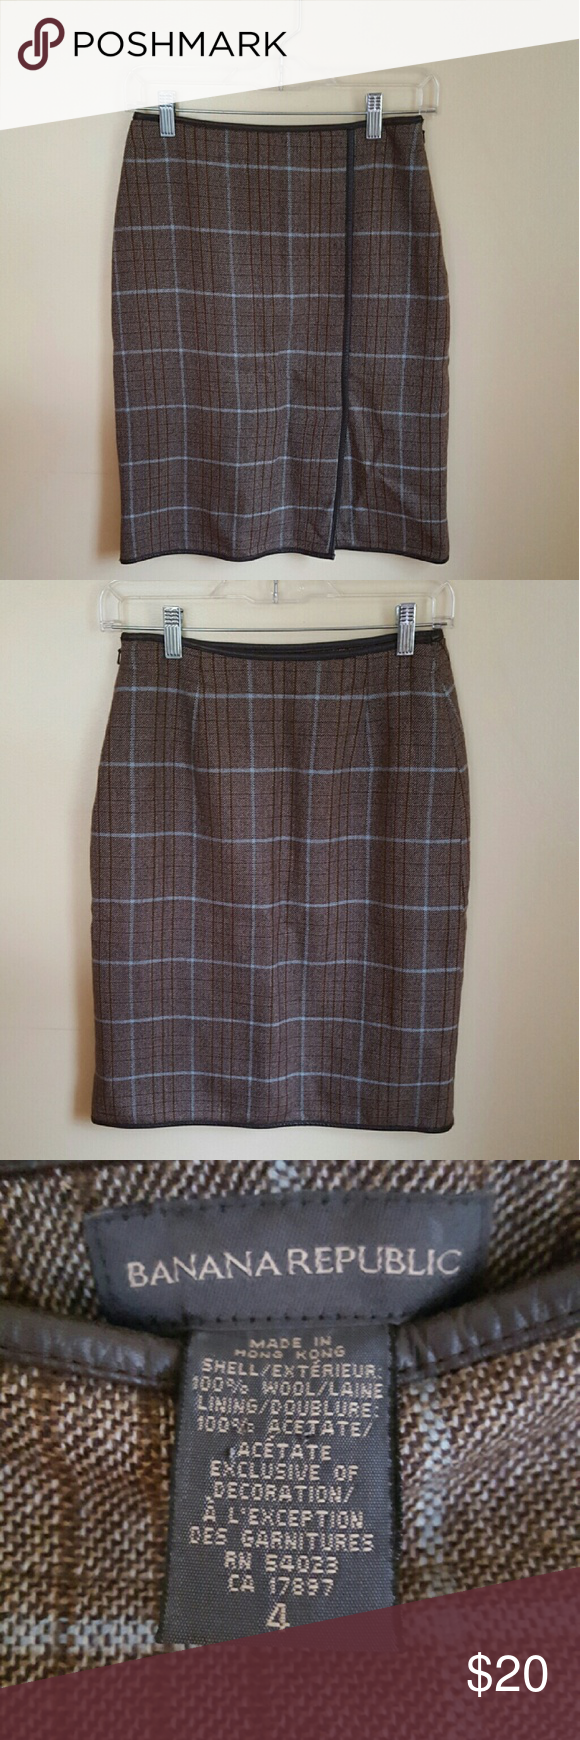 """Banana Republic Wool Plaid Skirt Banana Republic Wool Plaid Skirt in size 4. Gently worn. Fully lined. Brown and blue plaid pattern. Faux leather trim on top, bottom, and front of skirt. Side zip with hook and eye closure. Approximately 8"""" front slit. Waist is approximately 26"""" and total length is 22"""". A little wrinkled throughout. No rips, stains, or pulls. No trades but reasonable offers are welcomed. Banana Republic Skirts Pencil"""